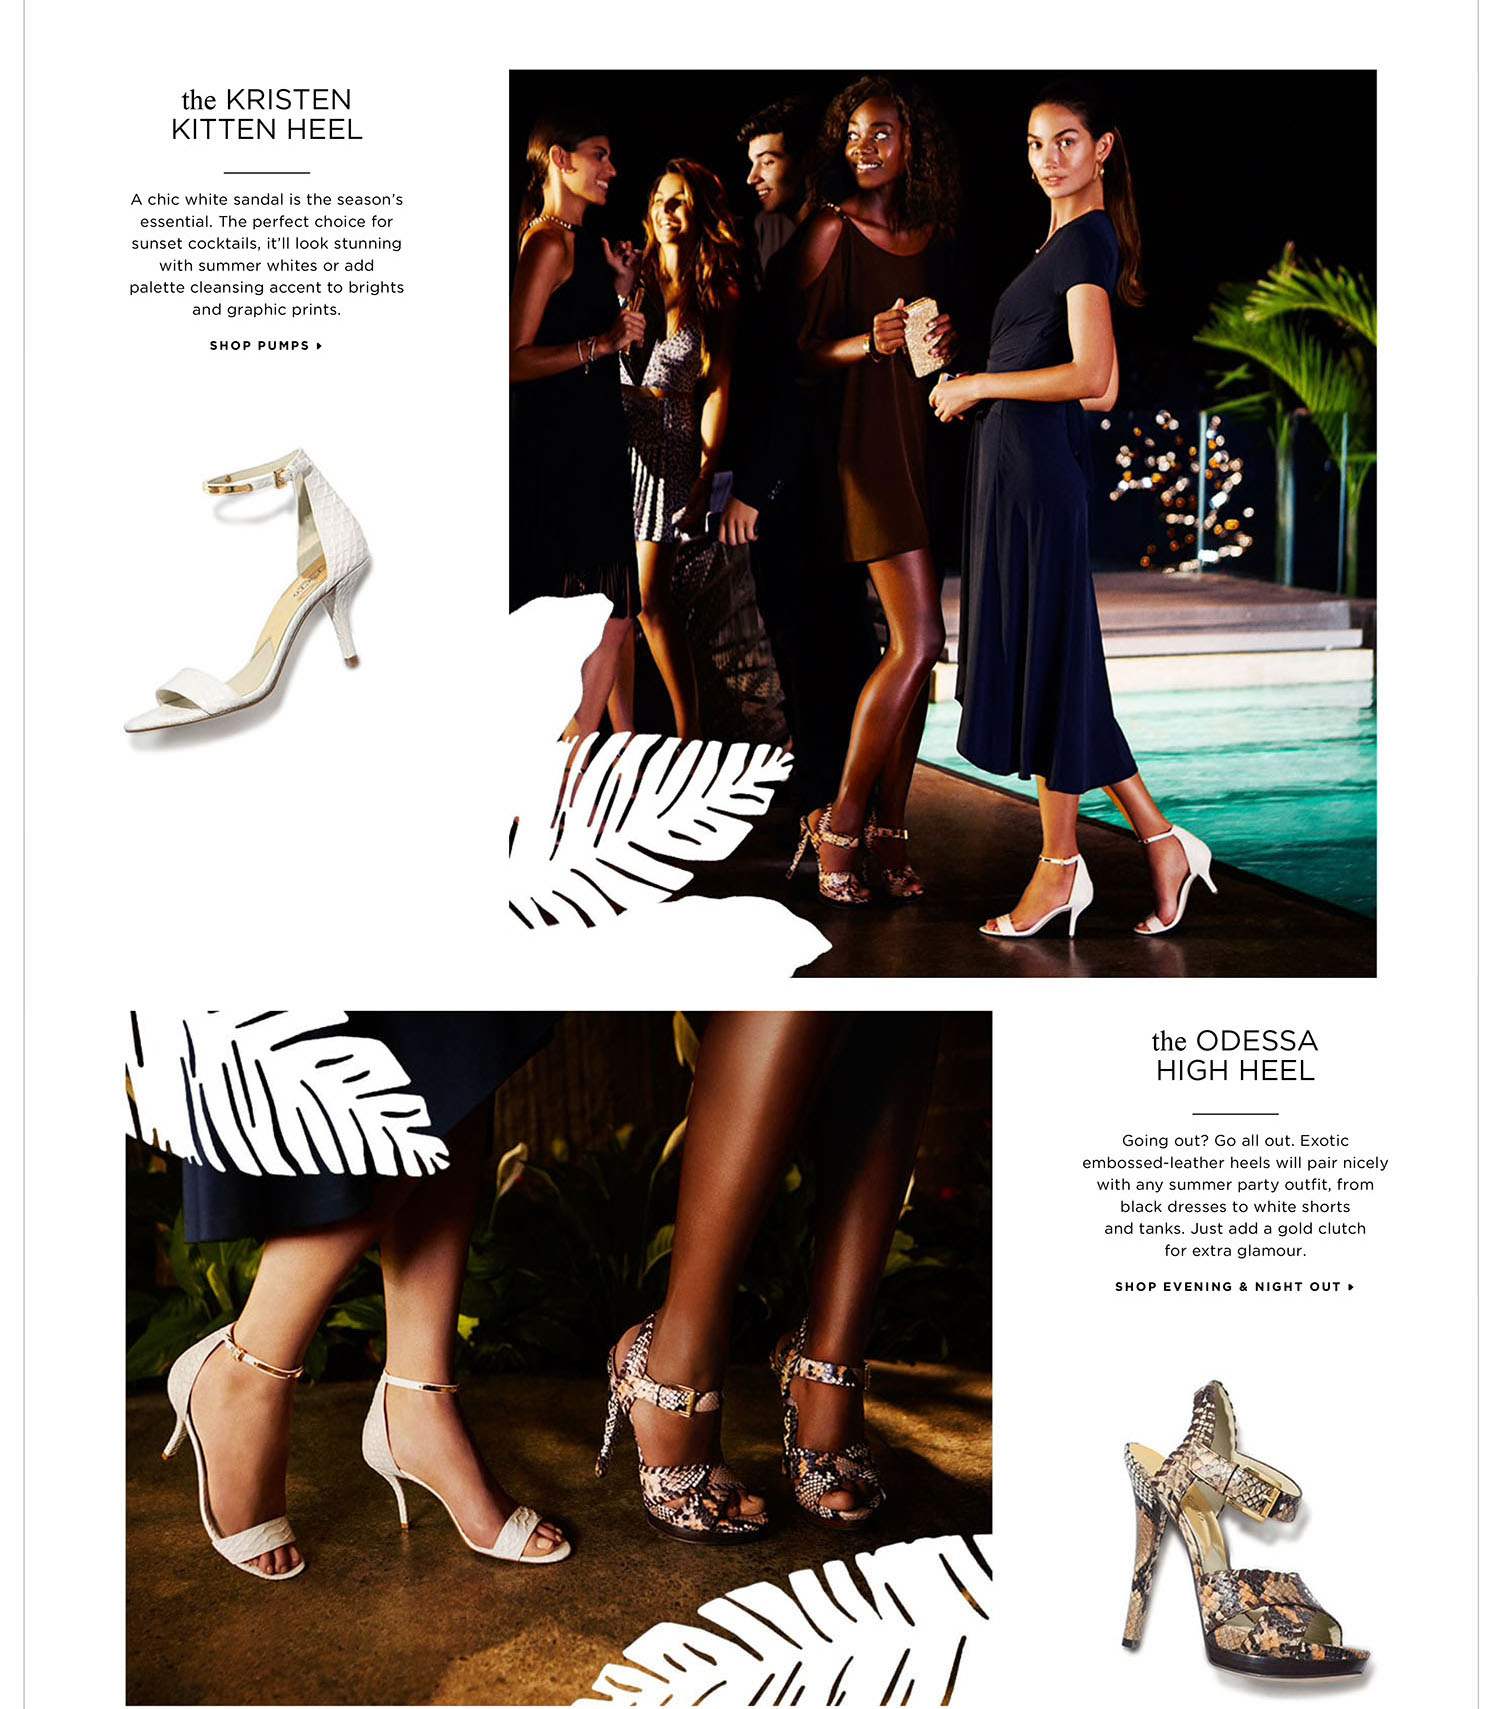 Michael Kors Jet Set 6 | Destination Kors _WEB EXECUTION_sm_p5